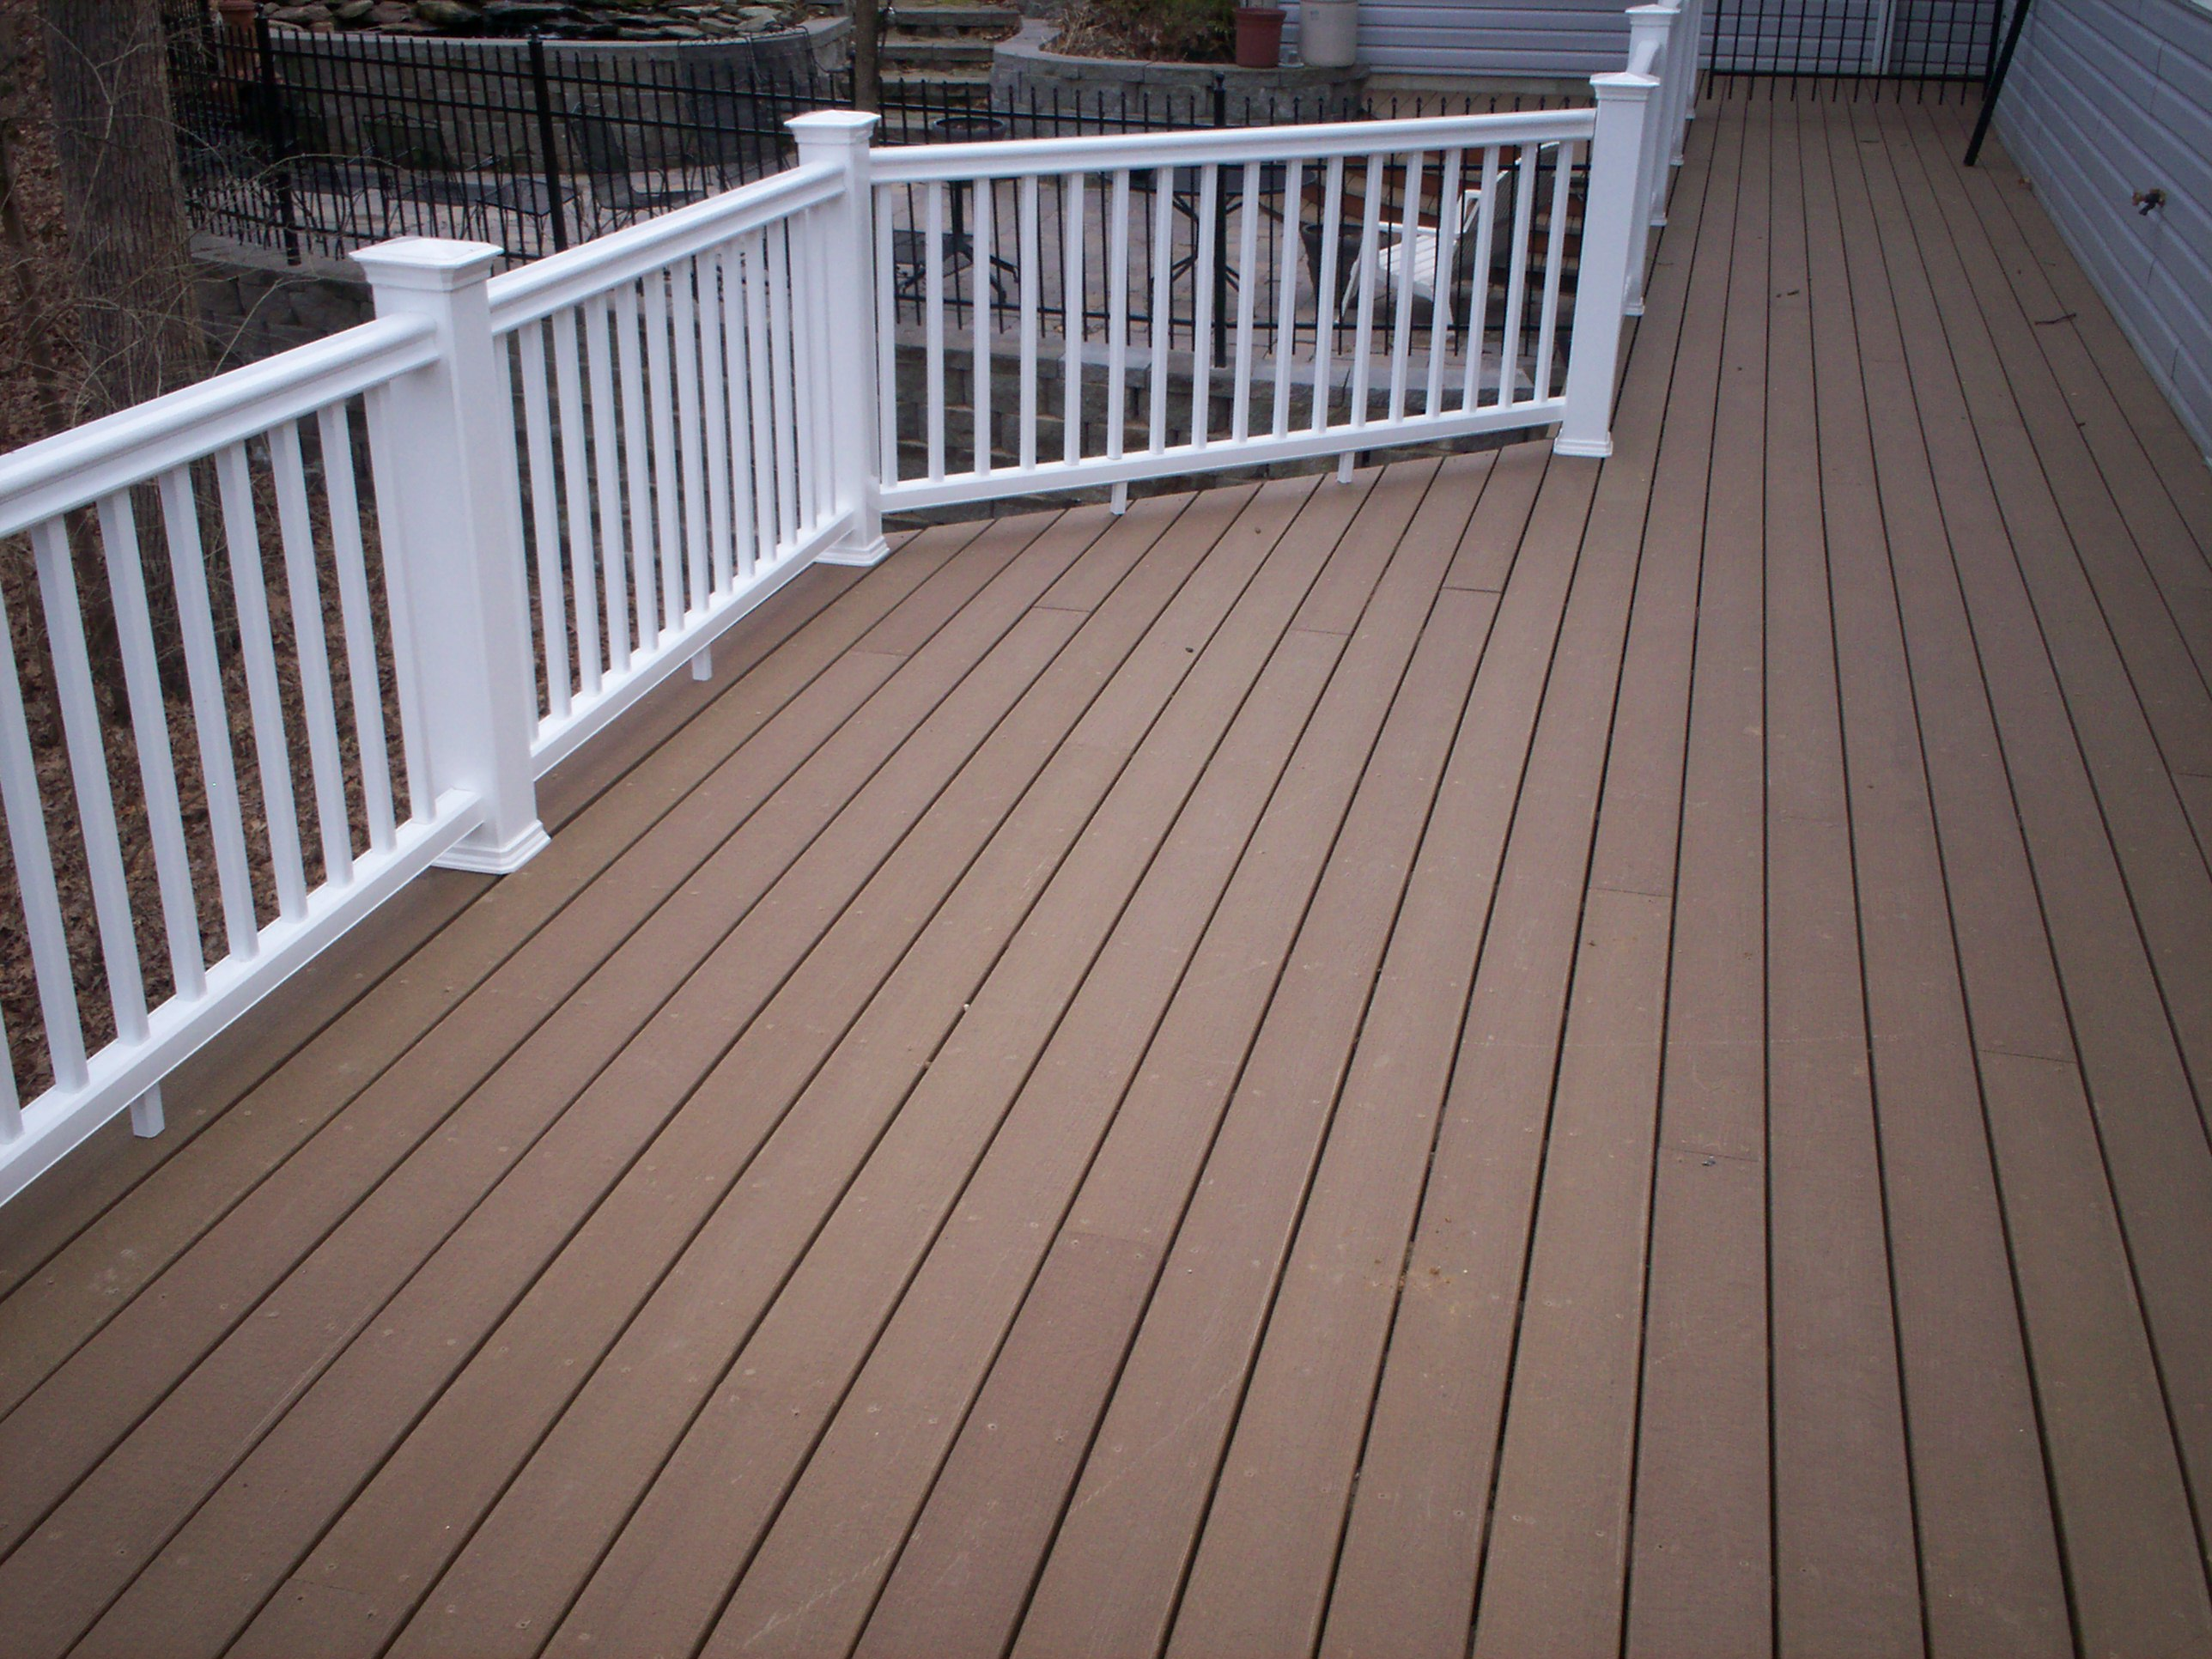 301 moved permanently Composite flooring for decks